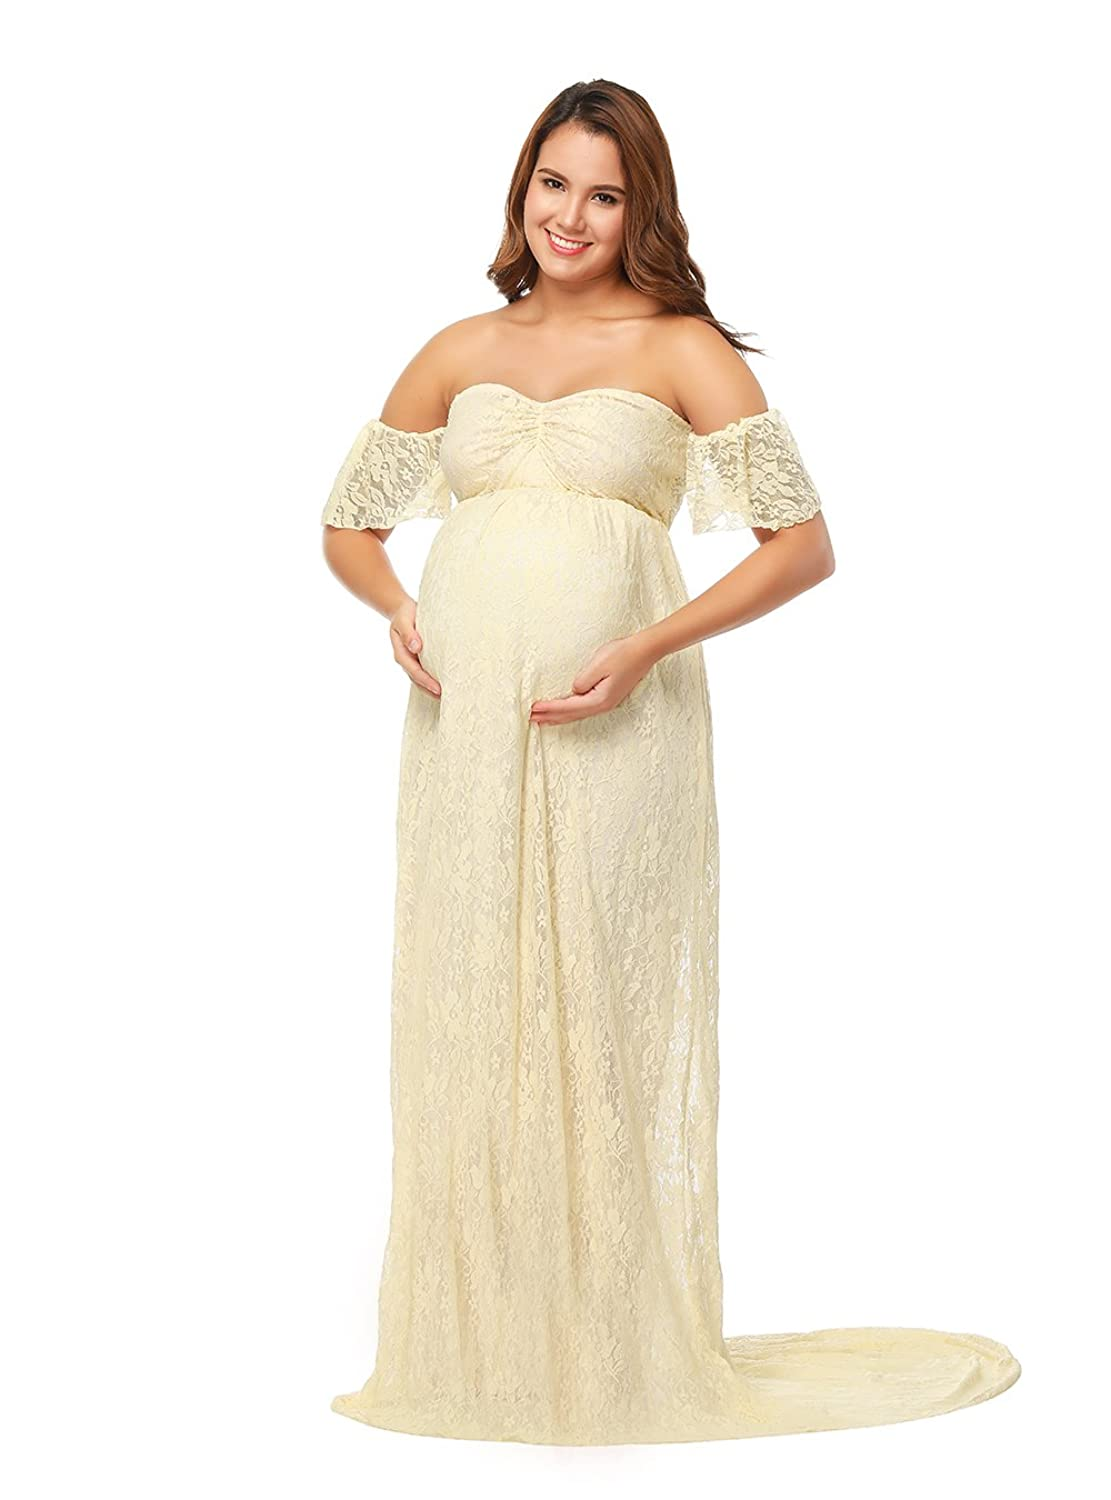 Amazon.com: Long Maternity Dress,Hemlock Women Lace Maternity Photo ...